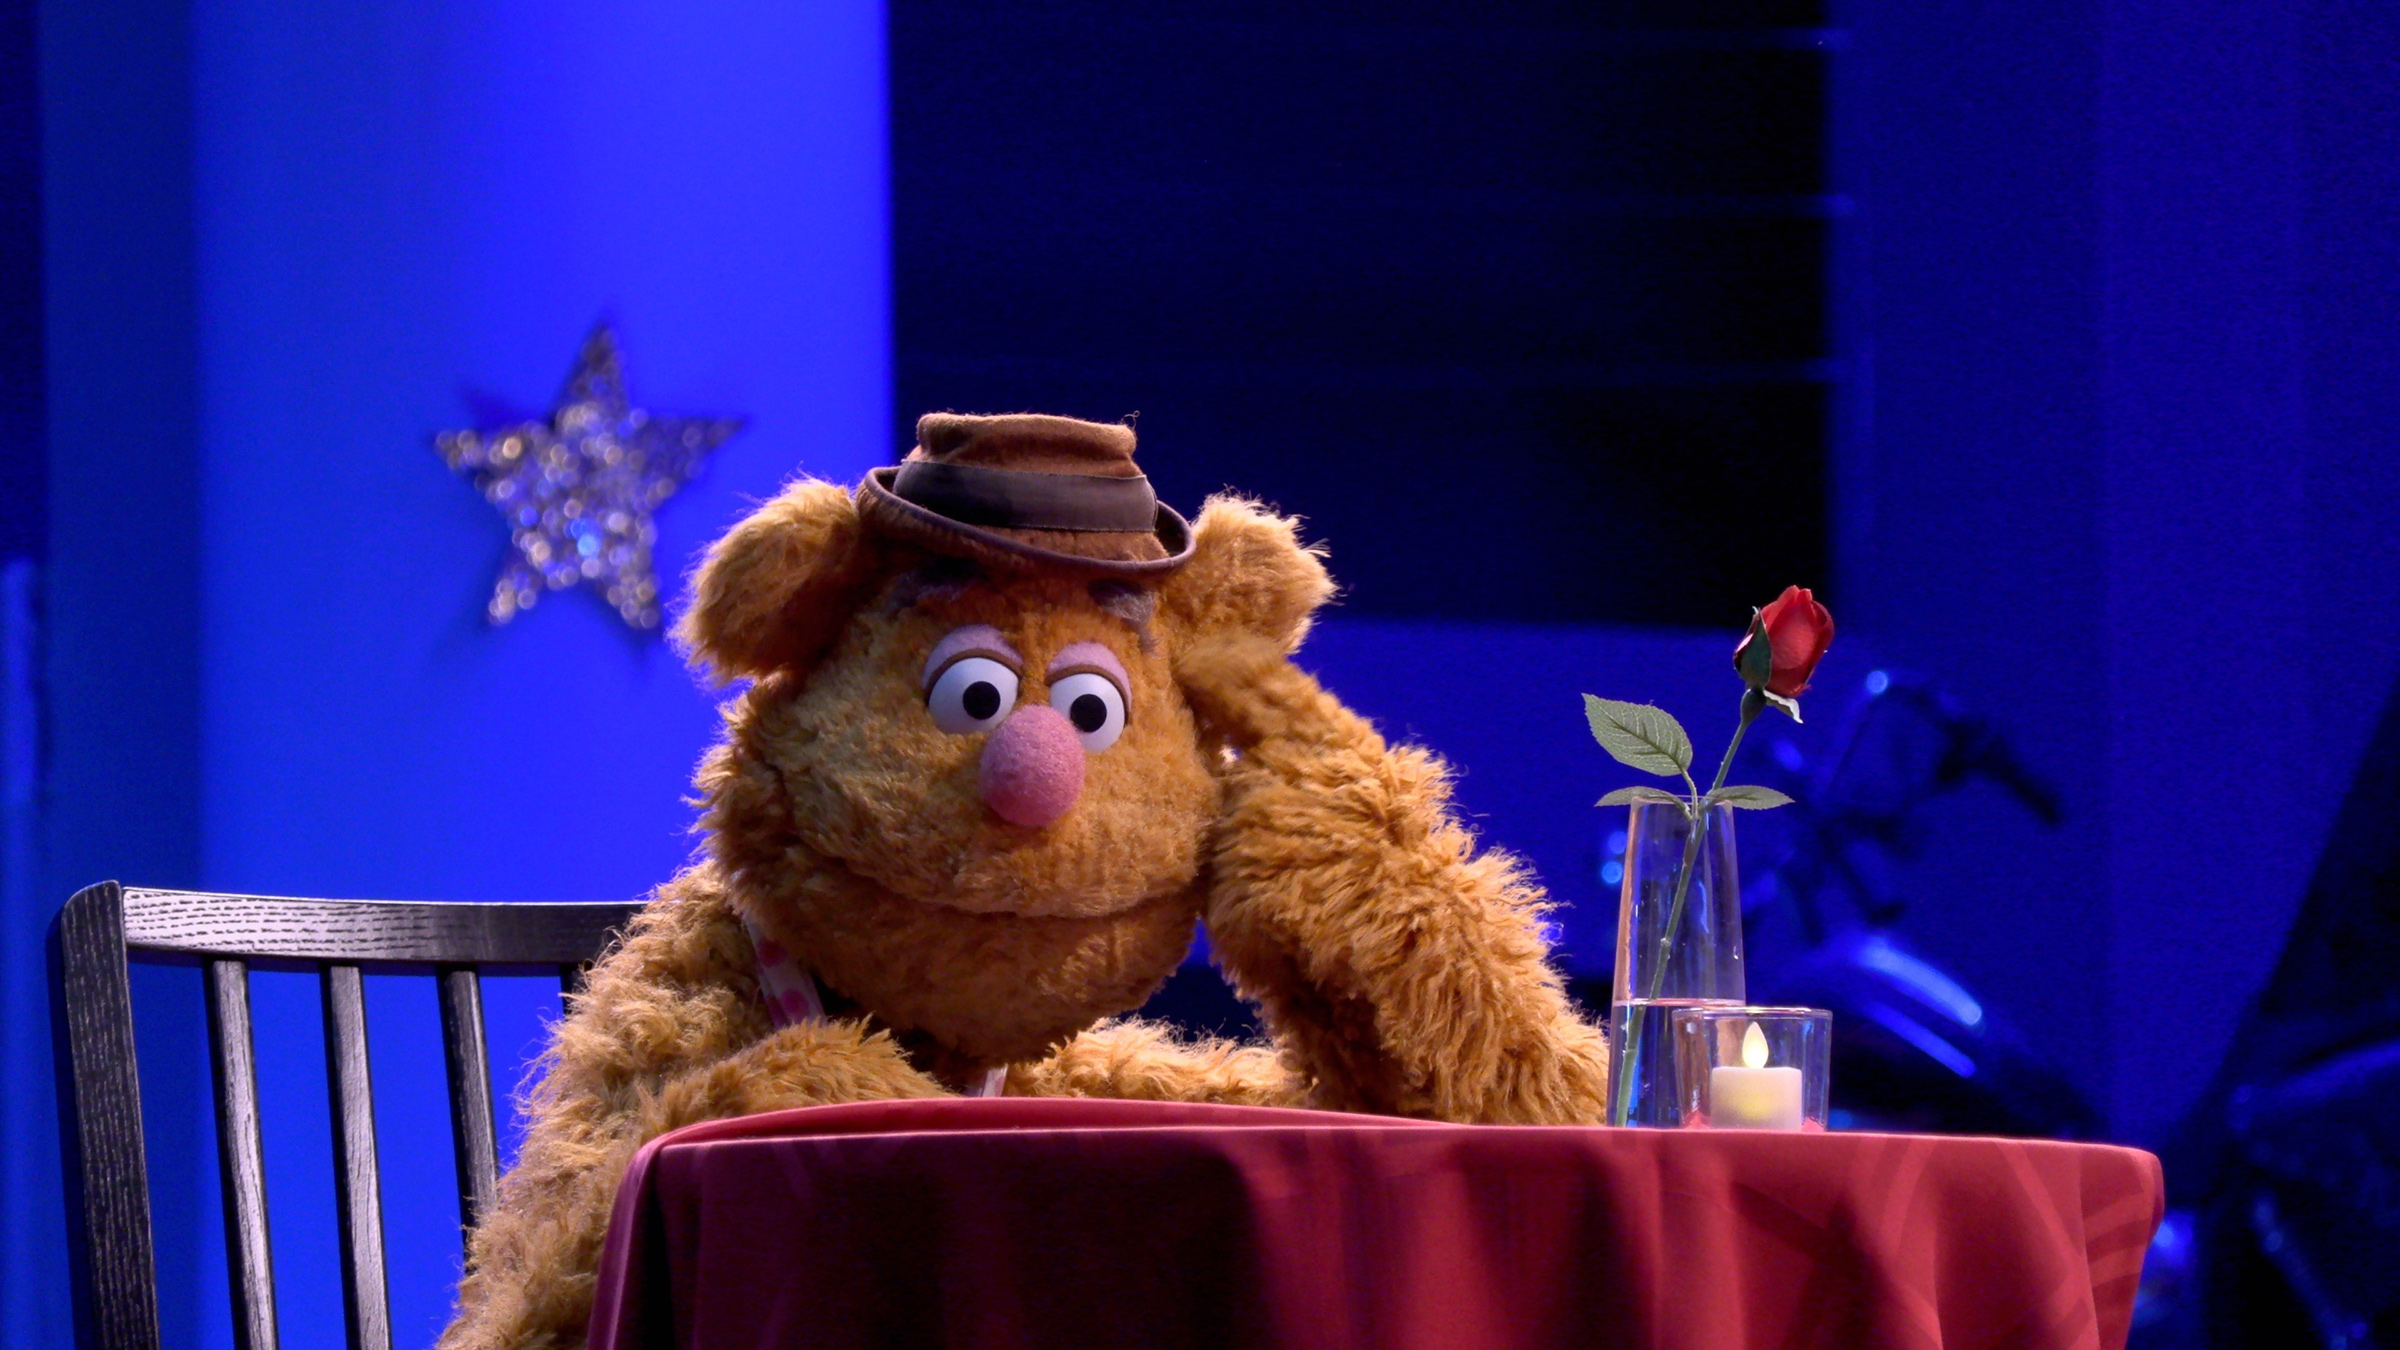 Wocka wocka! Hapless comedian Fozzie Bear returns to TV